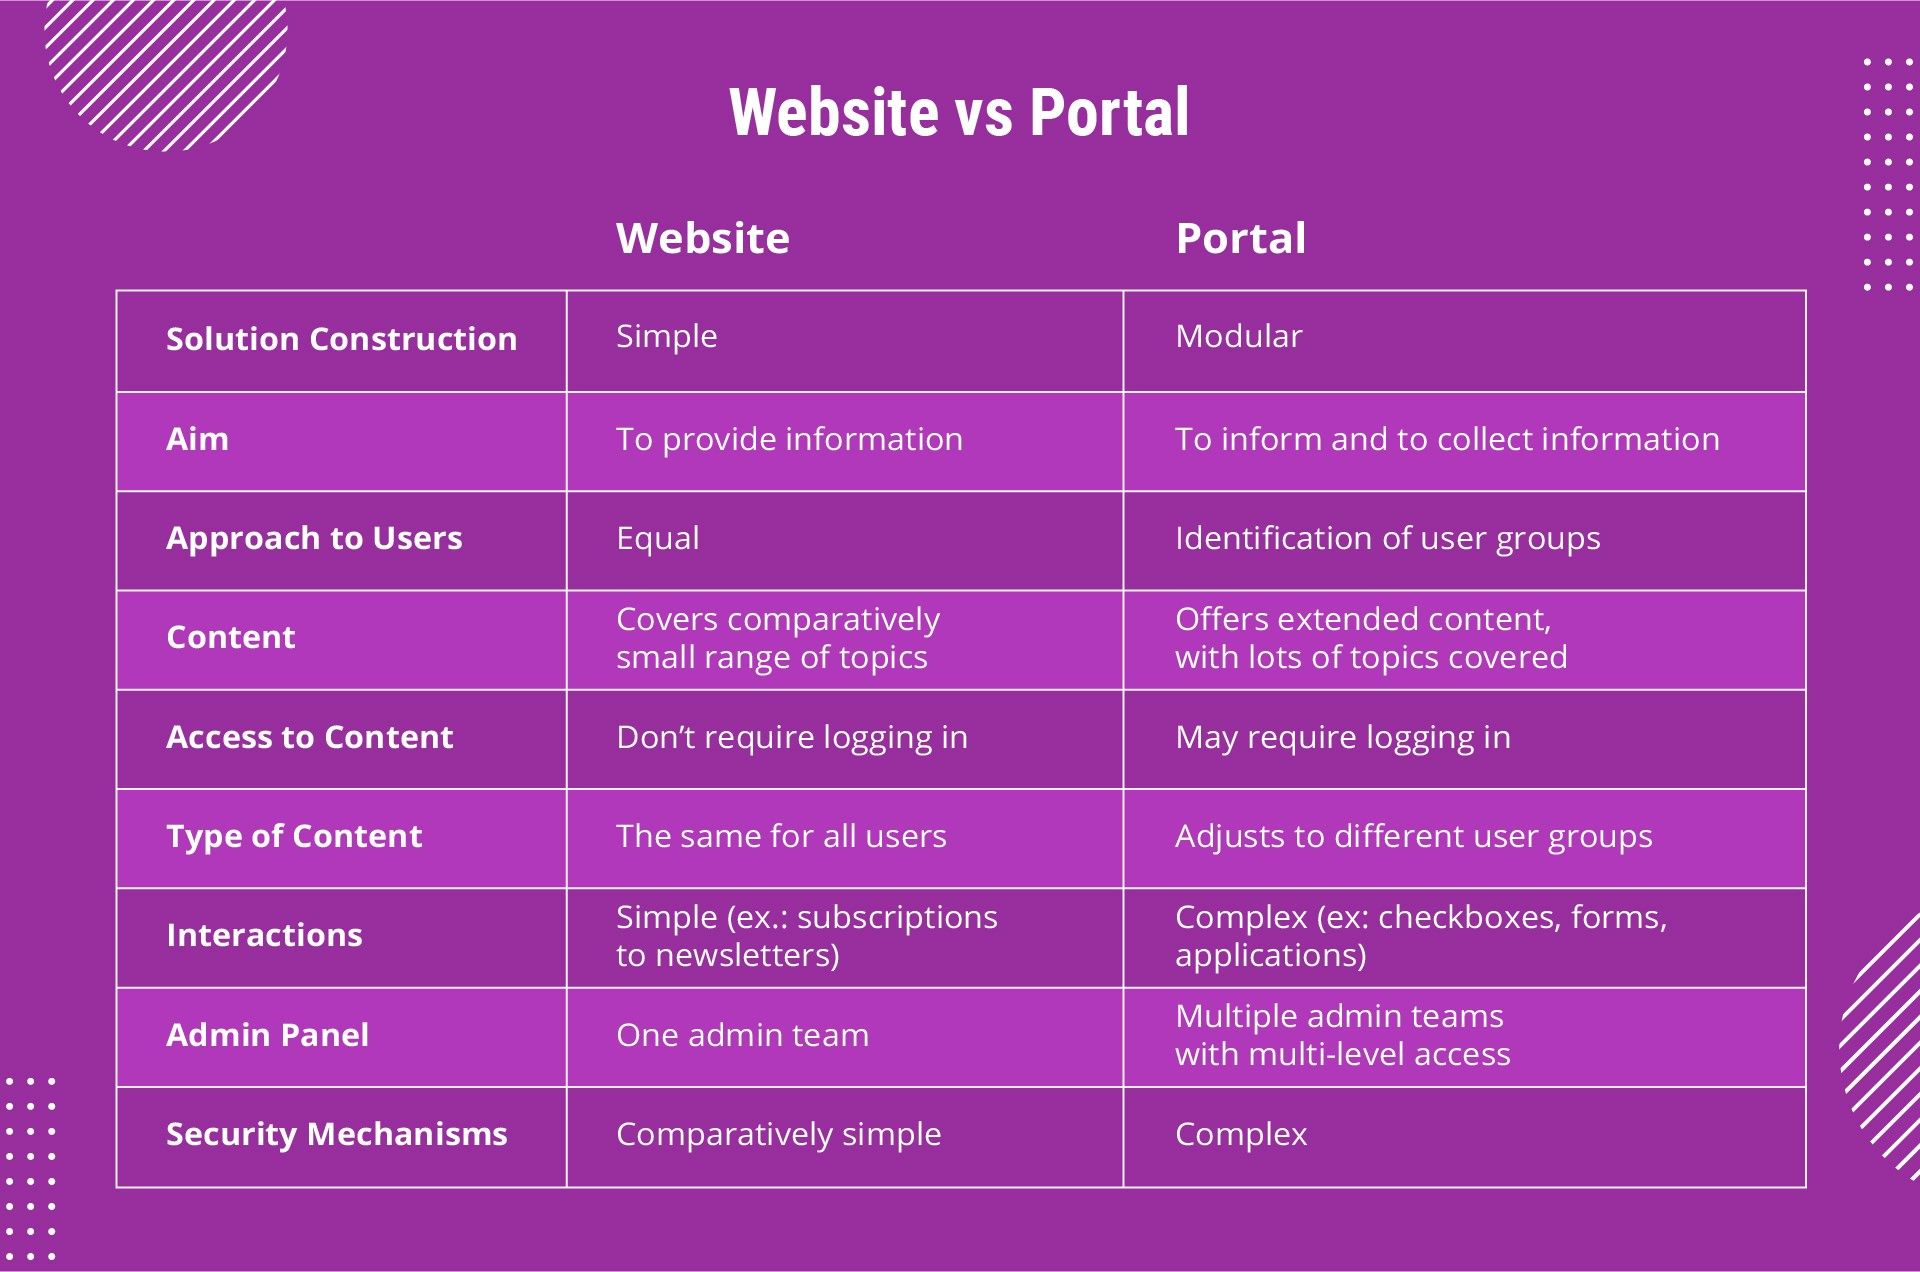 Differences Between Website and Portal in a Tabular Form